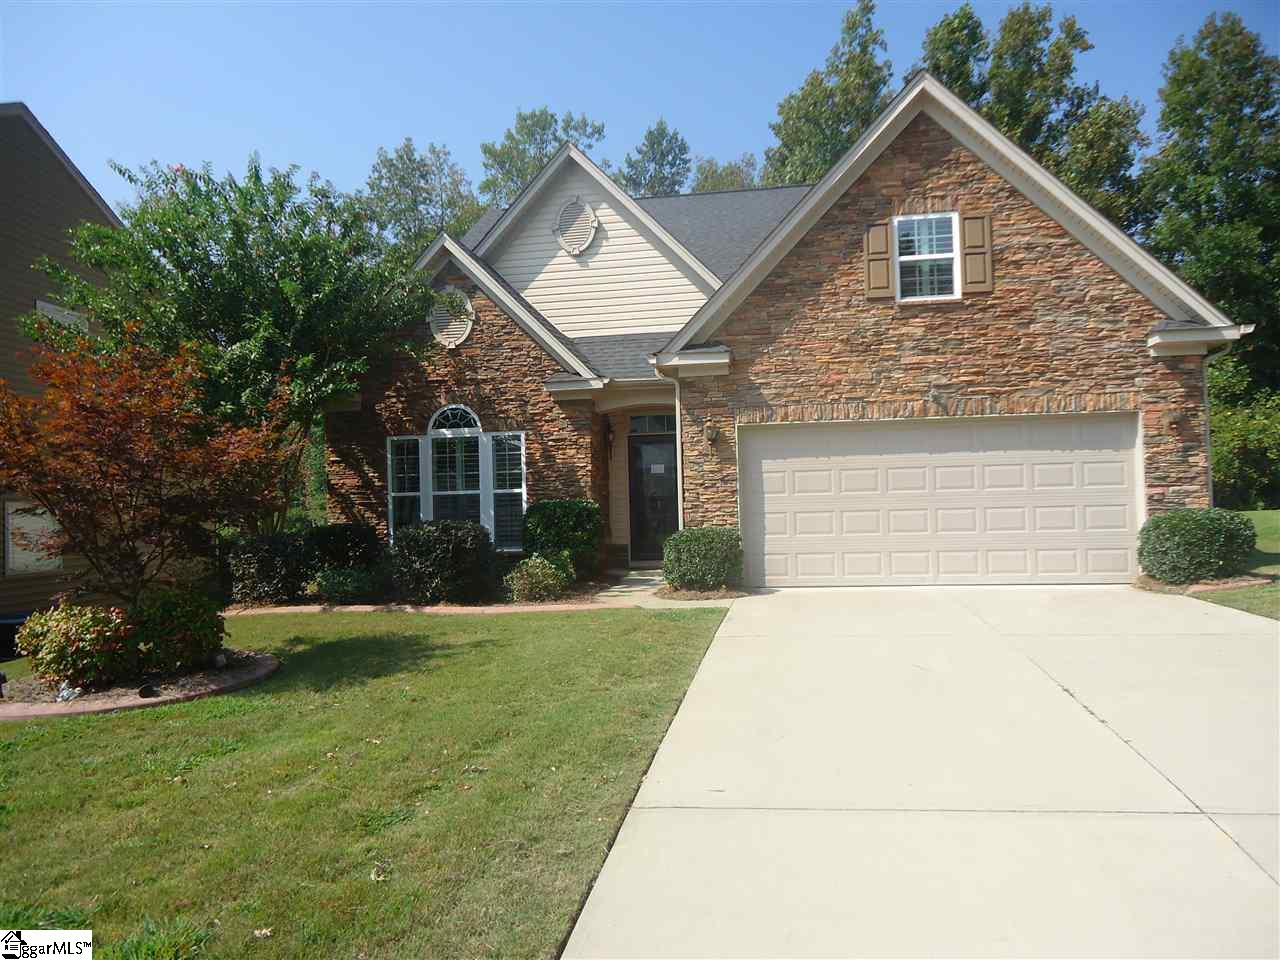 7 Jillian Lee Court, Simpsonville, SC 29681